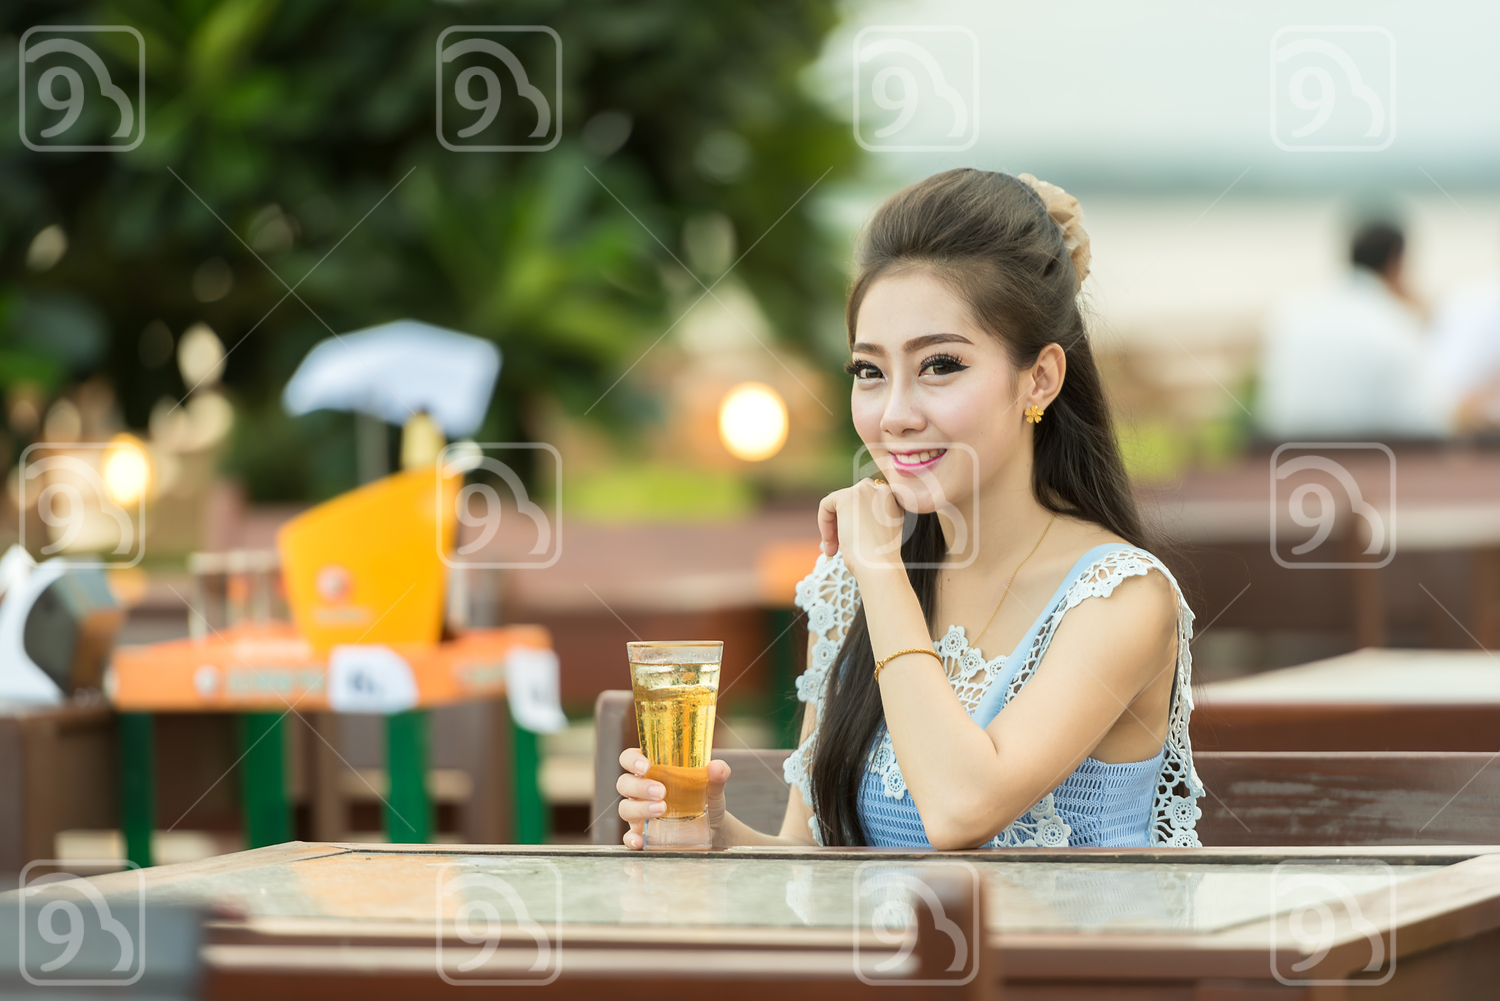 Woman drinking beer on cafe